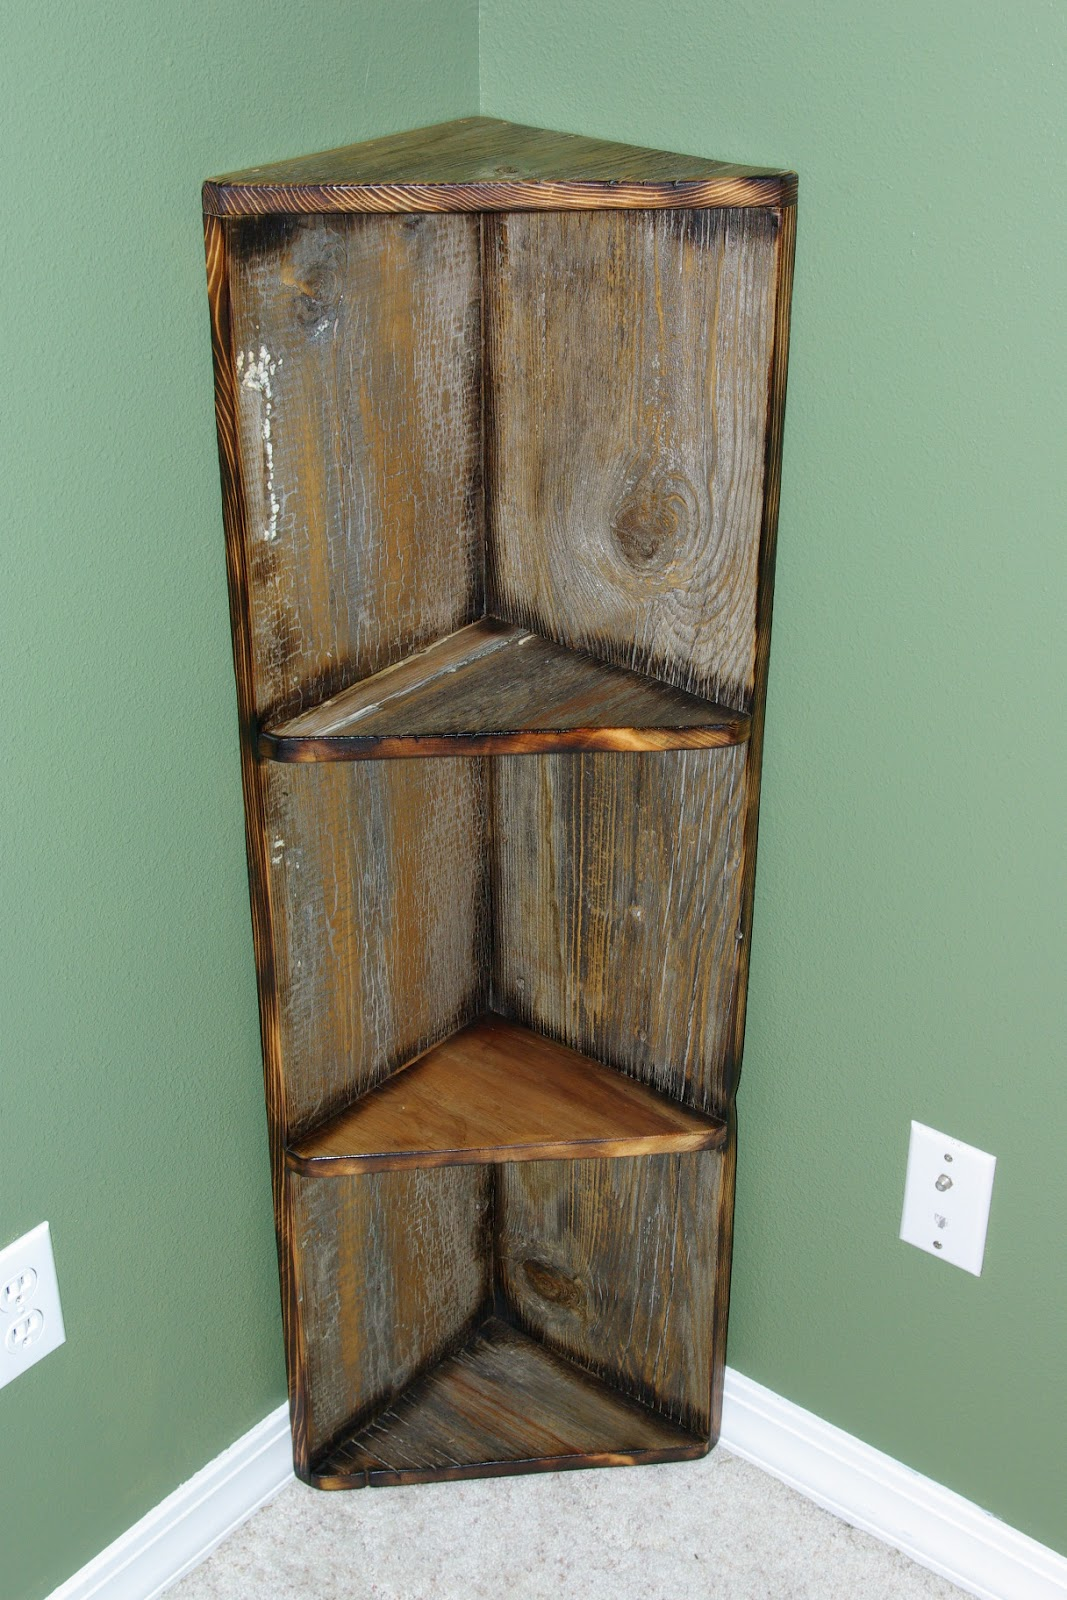 reclaimed wood floating corner shelf wall shelves barn ribba ture ledge fire mantel white kitchen island with seating deep pine shelving unit chunky rustic entryway coat rack